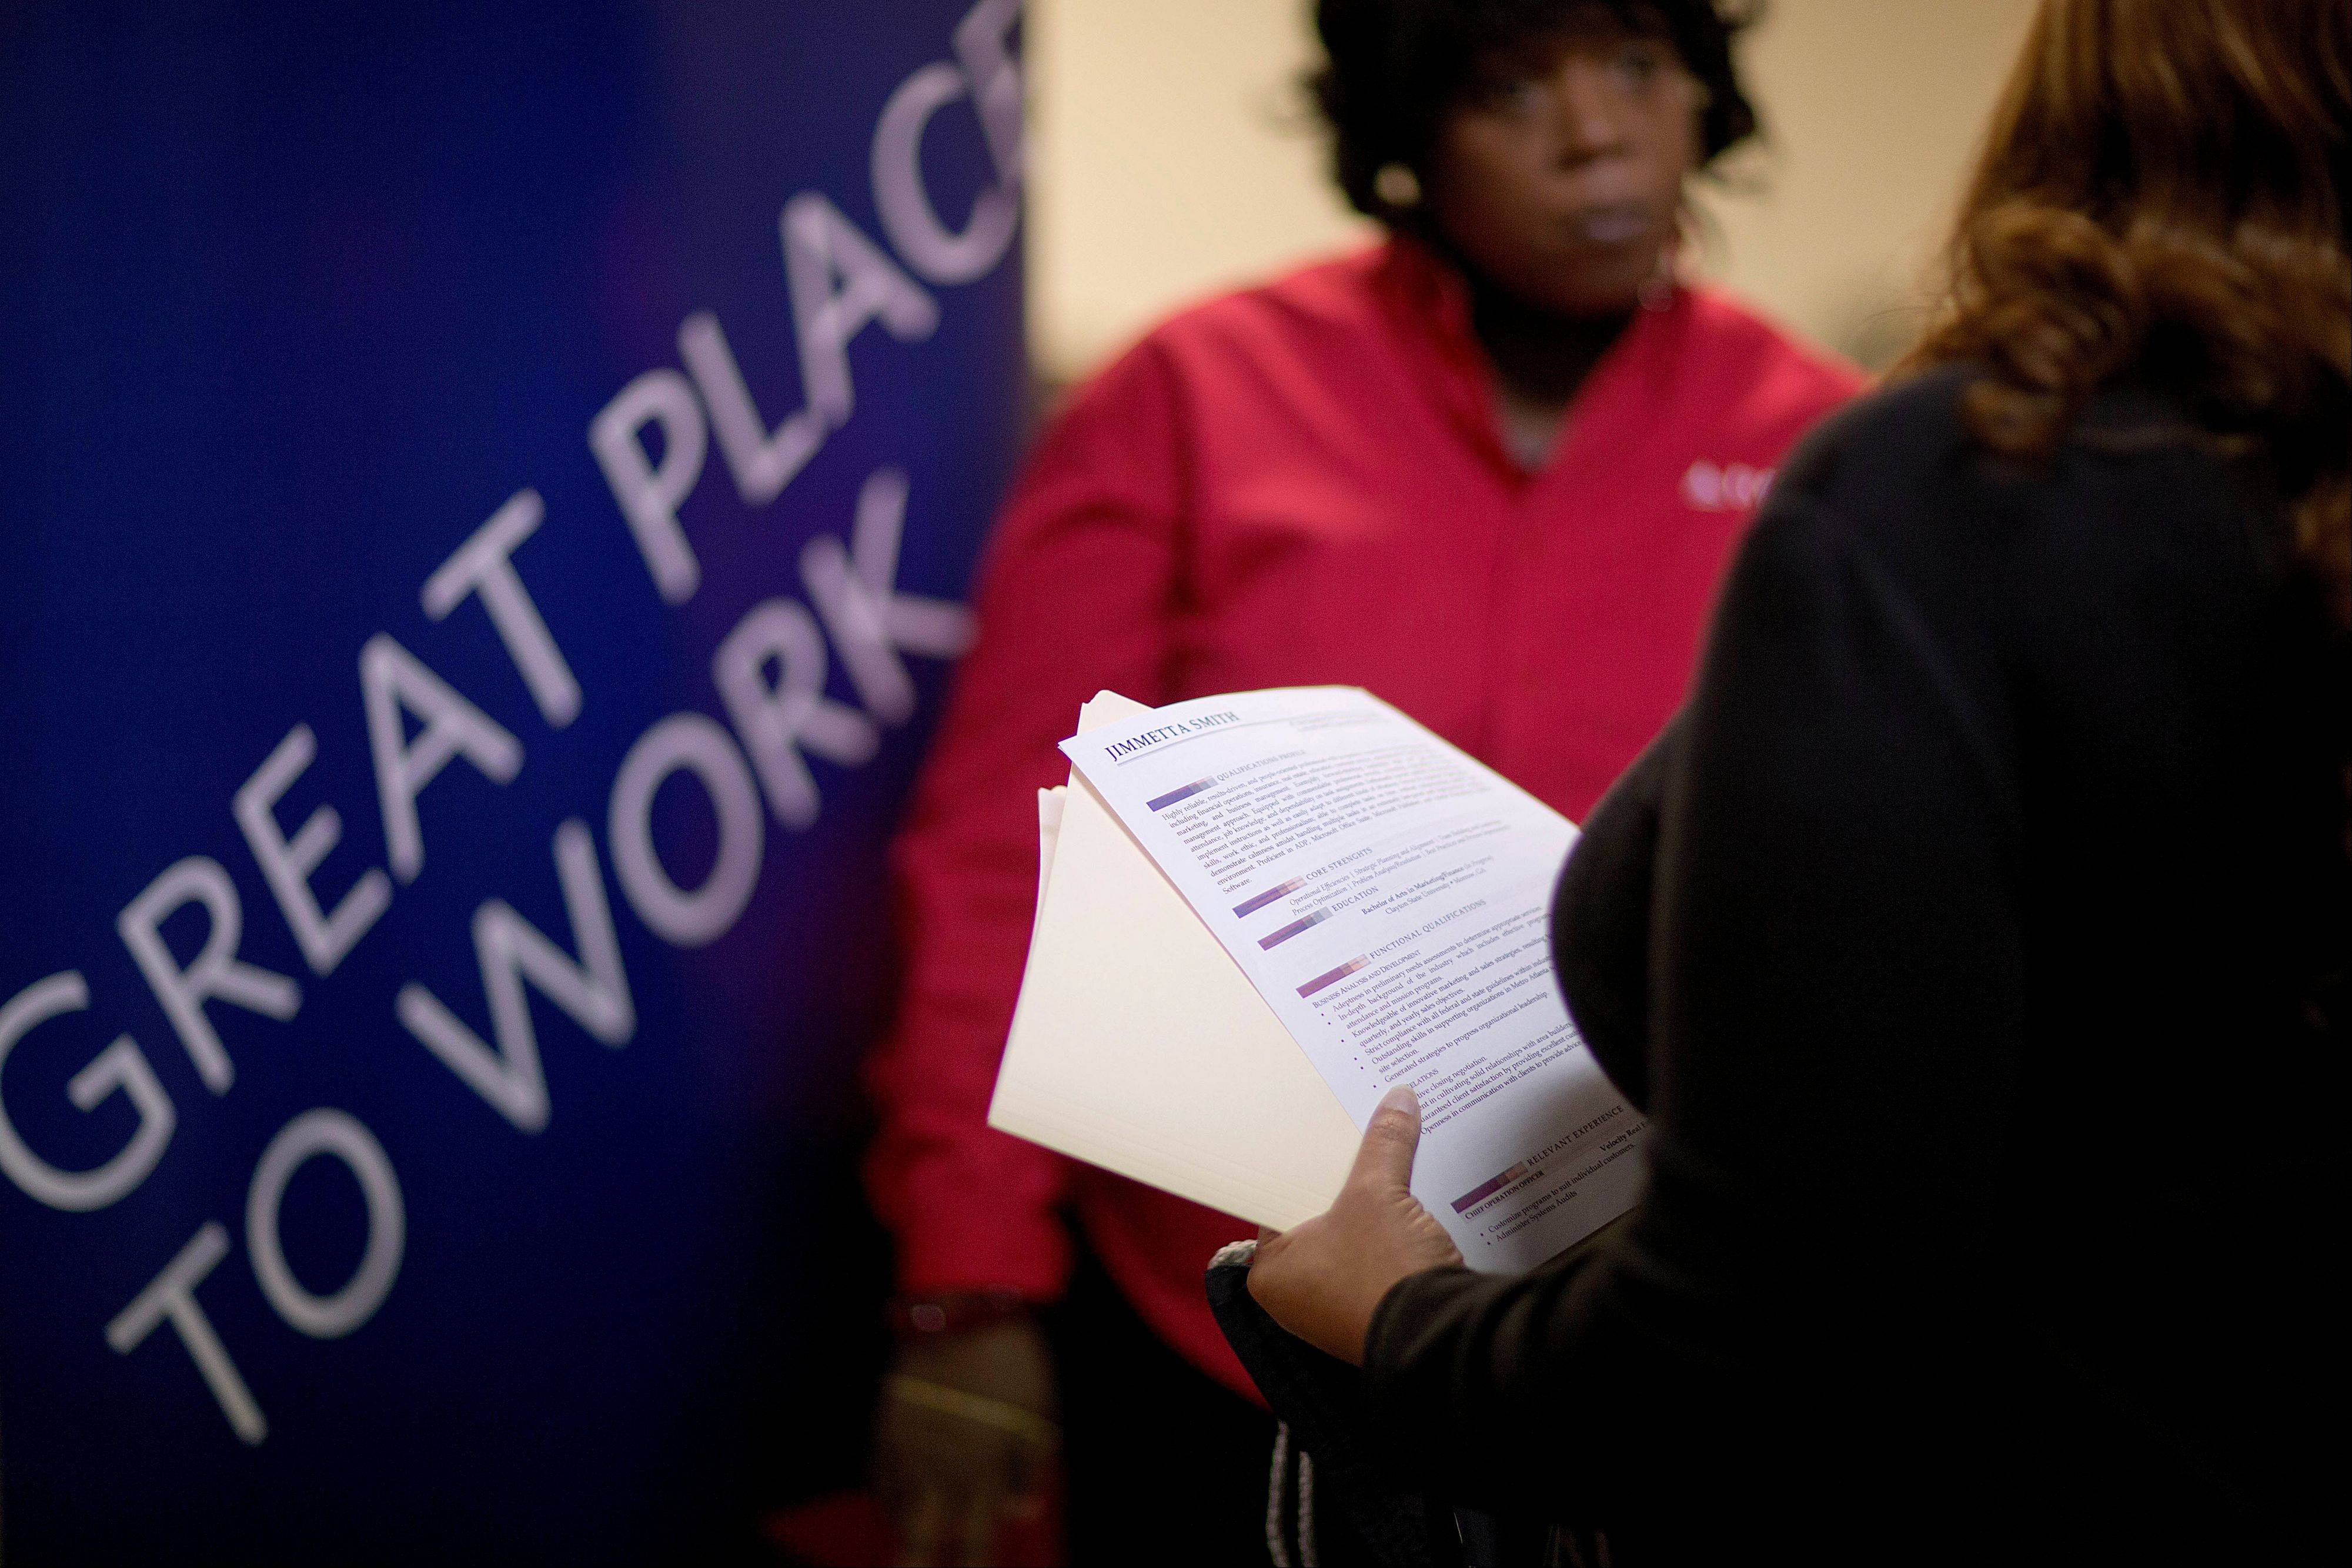 Jimmetta Smith of Lithonia, Ga., right, the wife of a U.S. Marine veteran, holds her resume while talking with Rhonda Knight, a senior recruiter for Delta airlines, at a job fair for veterans and family members at the VFW Post 2681, in Marietta, Ga.